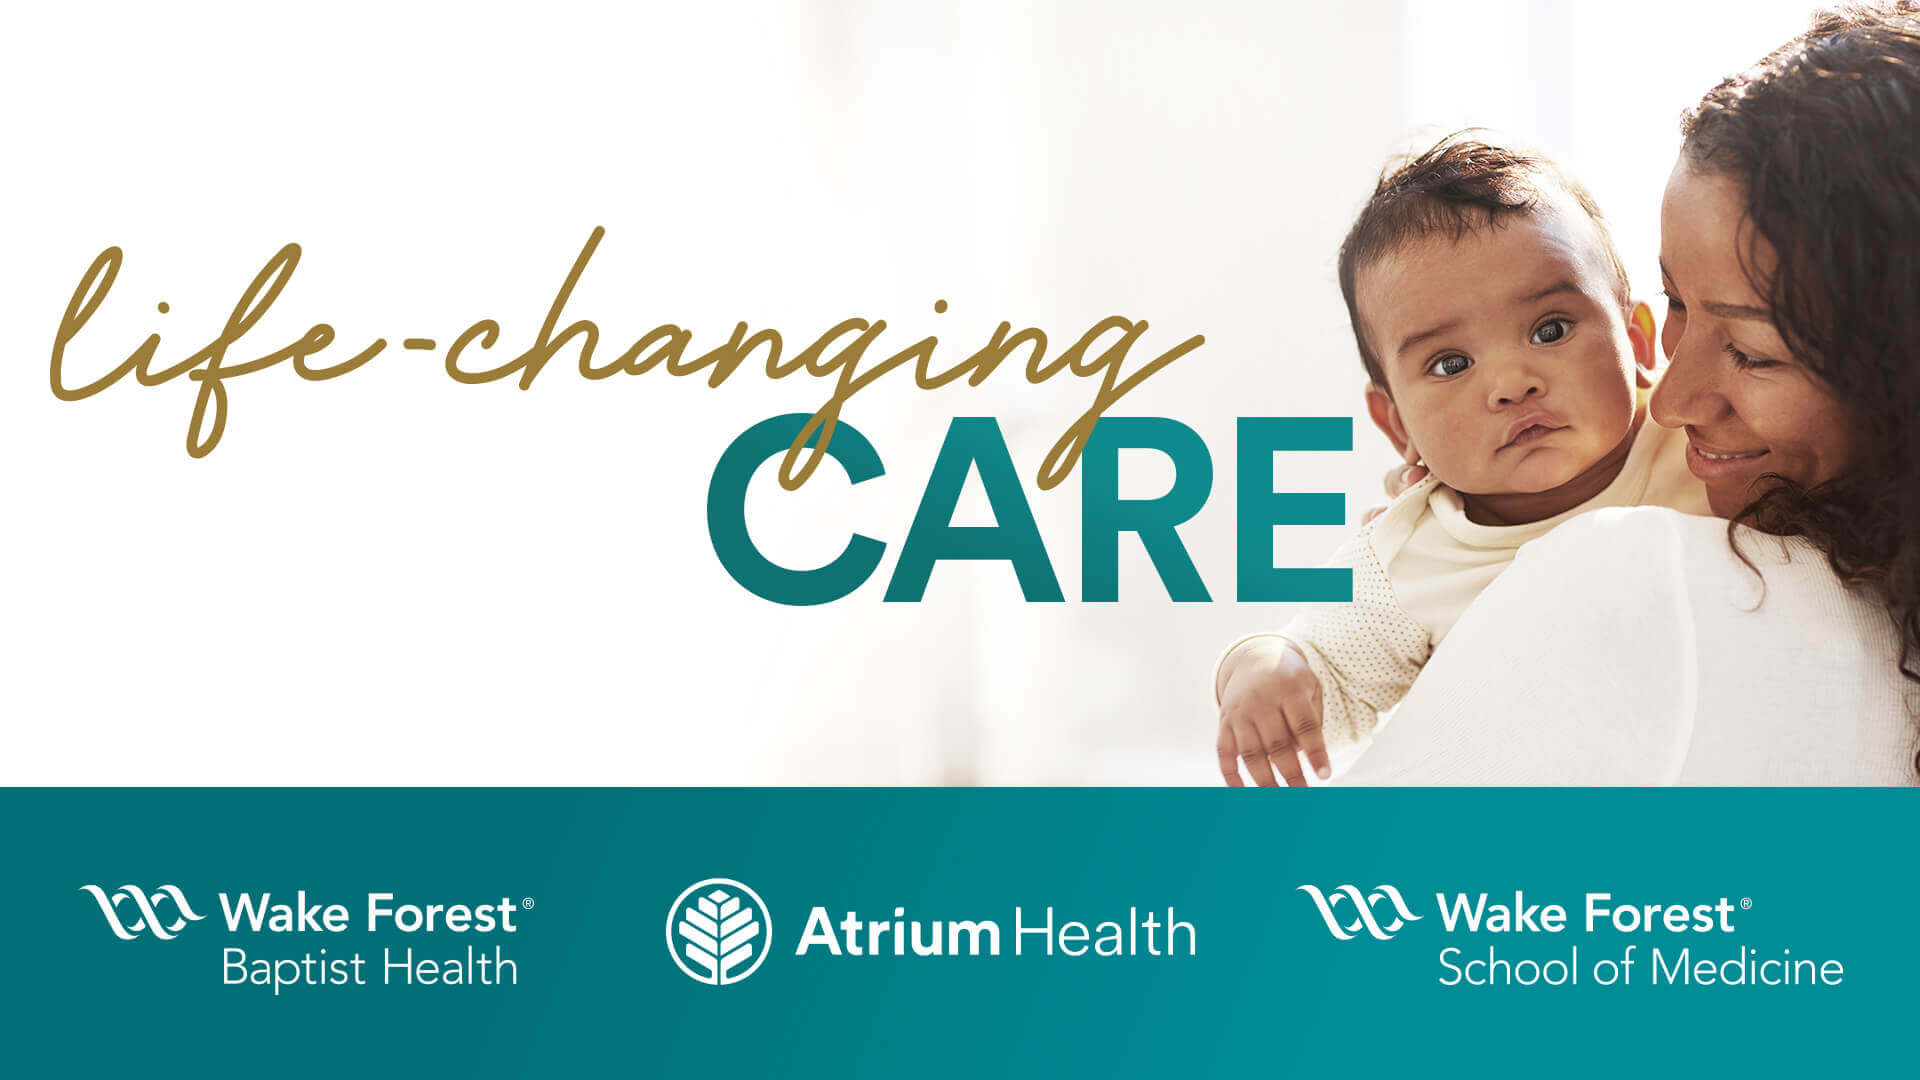 Atrium Health and Wake Forest Baptist Health join together.